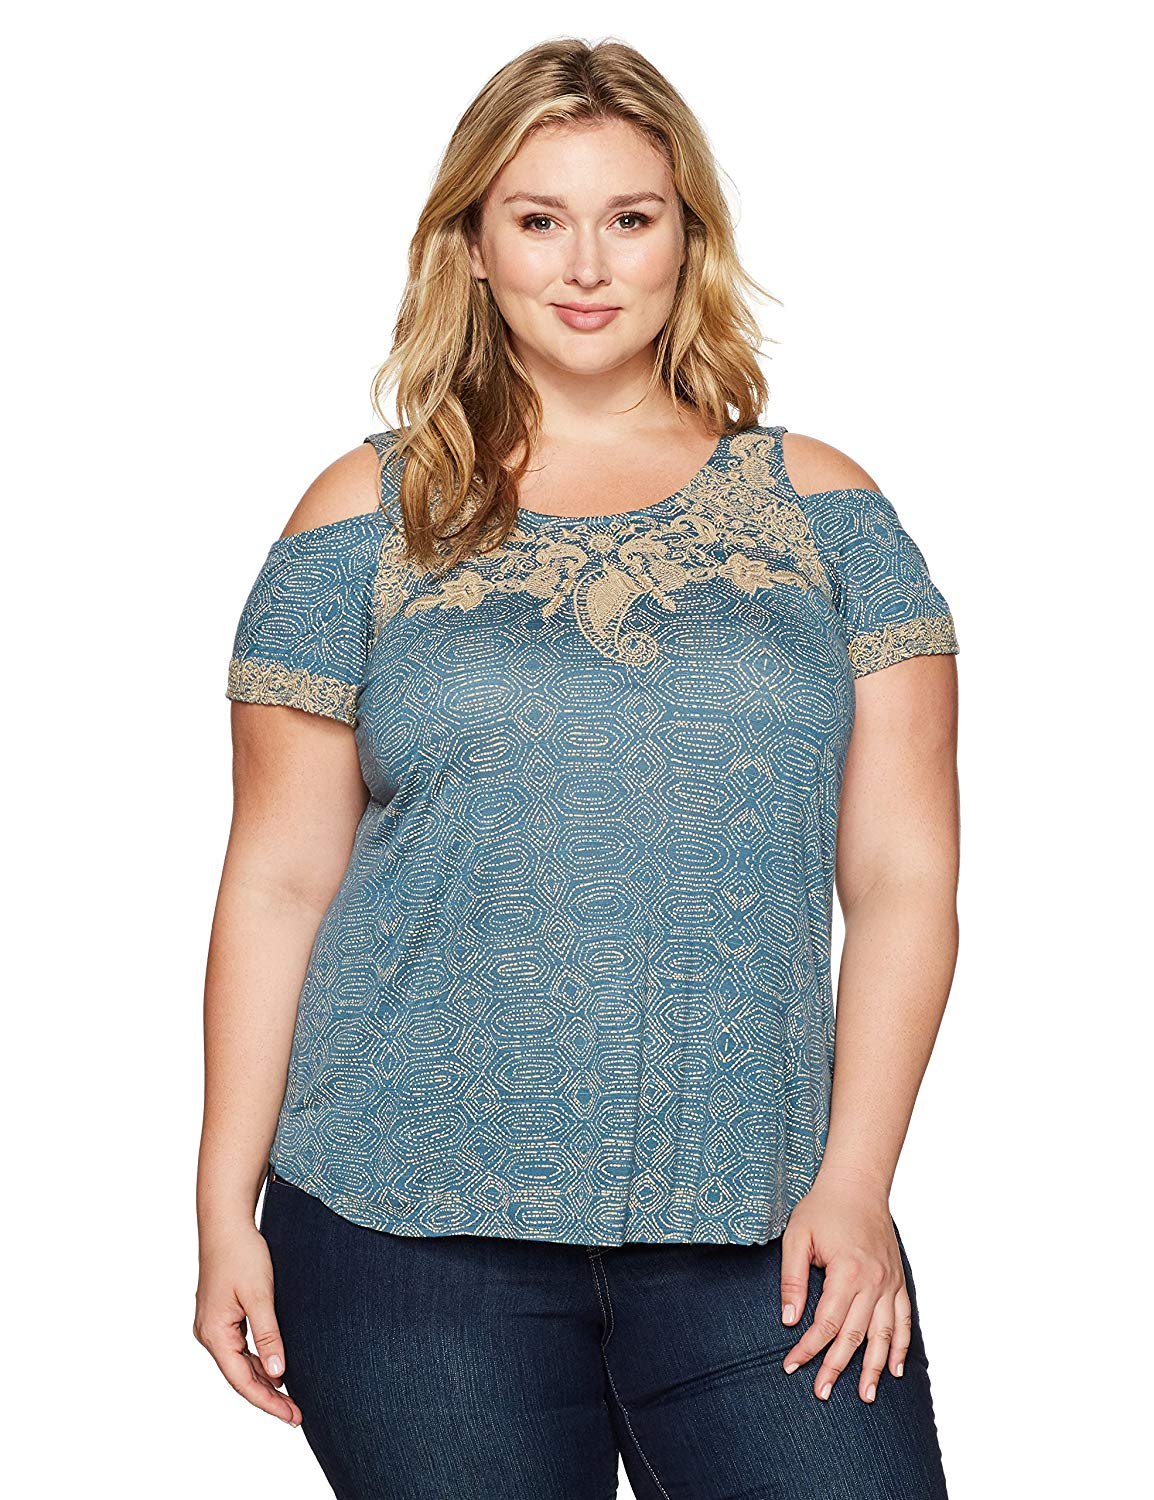 dff38b35bb983 Get Quotations · Lucky Brand Women s Plus Size Embroidered Cold Shoulder Top